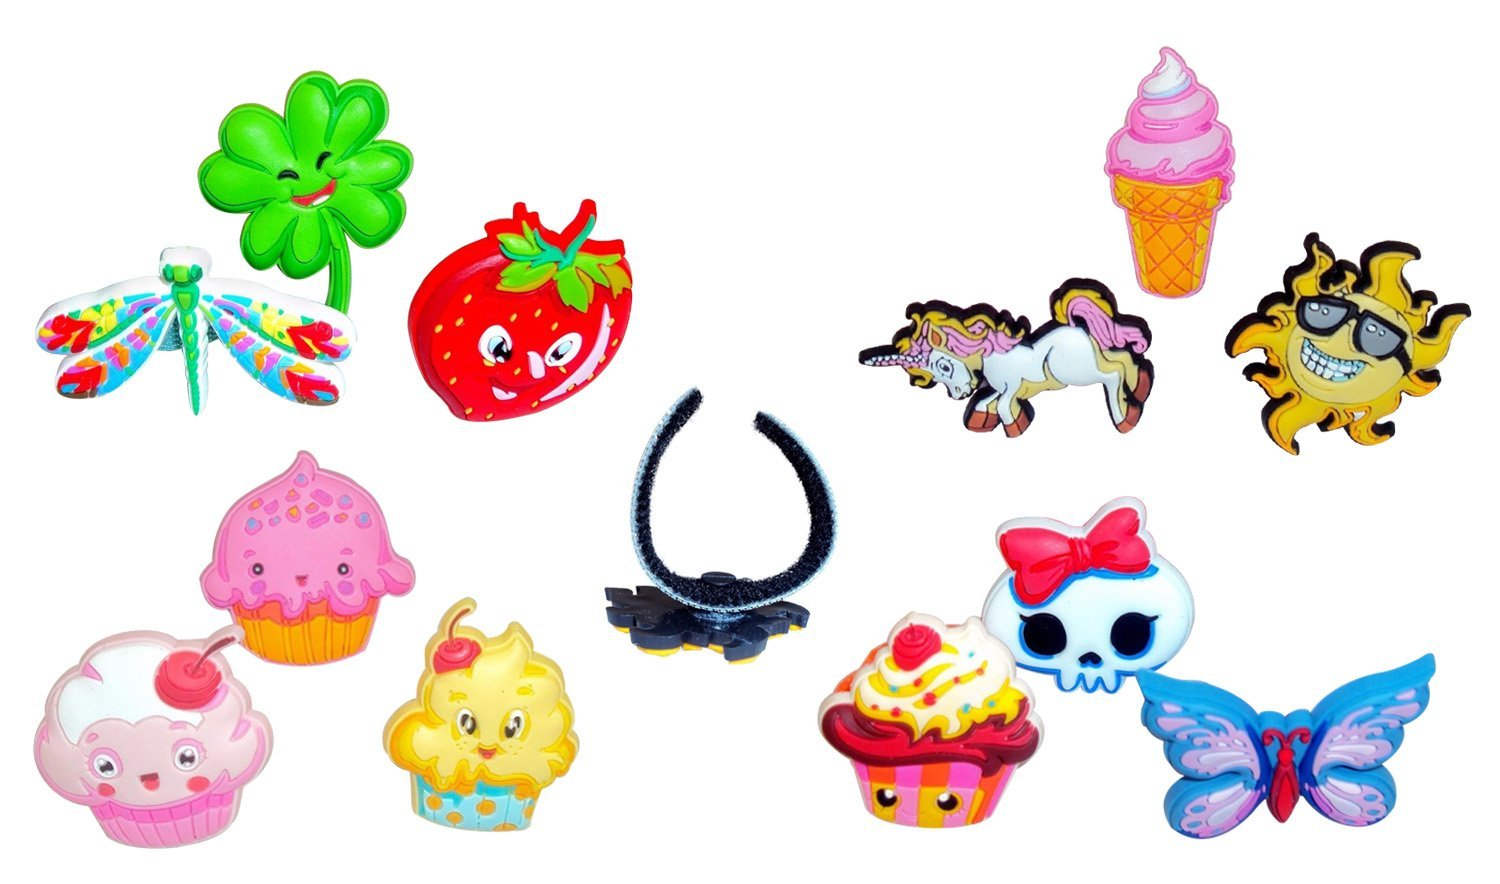 Floppets Charmlets, Cool Kids Activities - Play Rings, Kids Charms, Fun Crafts For Kids , Fun Games For Kids, Colorful Kids Party Toy Rings, Kids Backpack Decoration, Toe Rings, Kids Fashion Accessories - Cool Kids Stuff, Cheap Fun Kids Activity or Party Favor Gift. Connectable, Collectible,